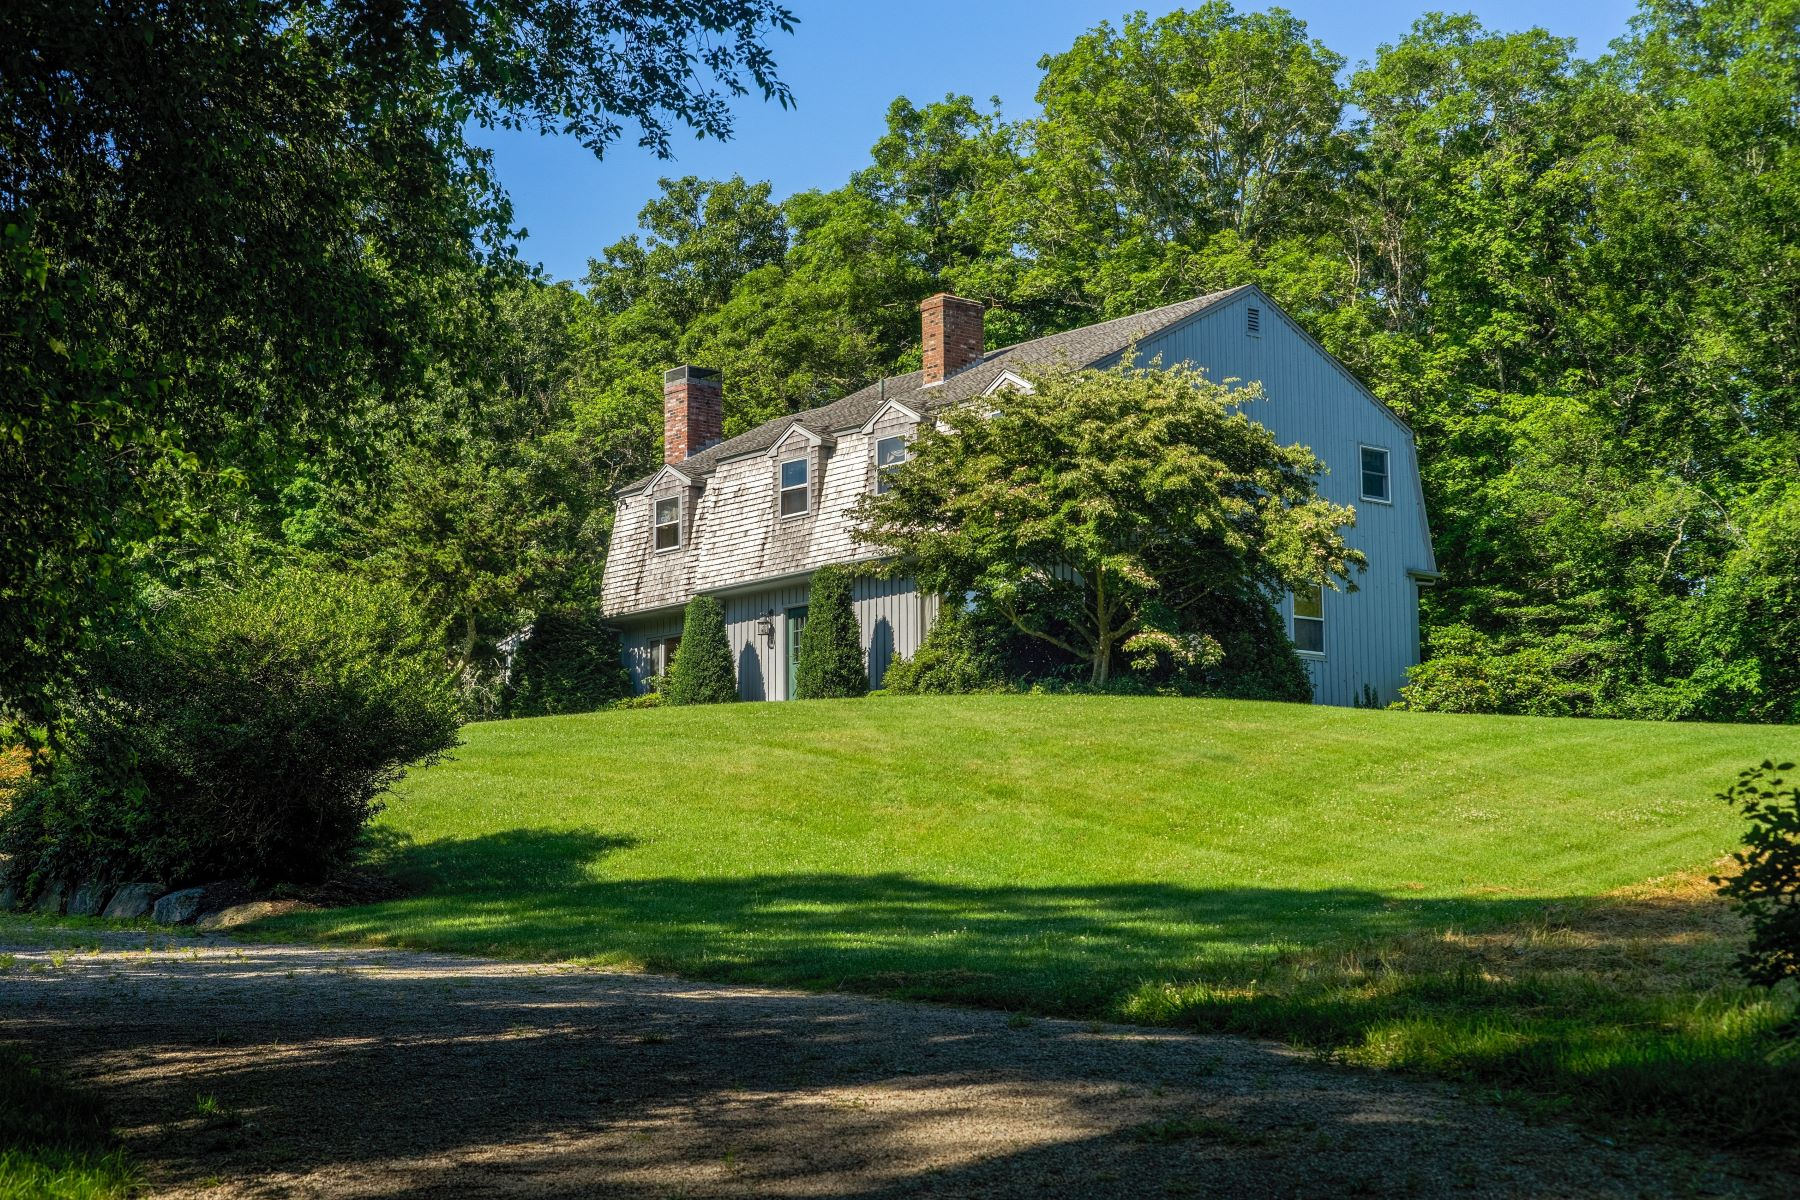 Single Family Homes for Sale at 33 Big Drum Road, Little Compton, RI Little Compton, Rhode Island 02837 United States